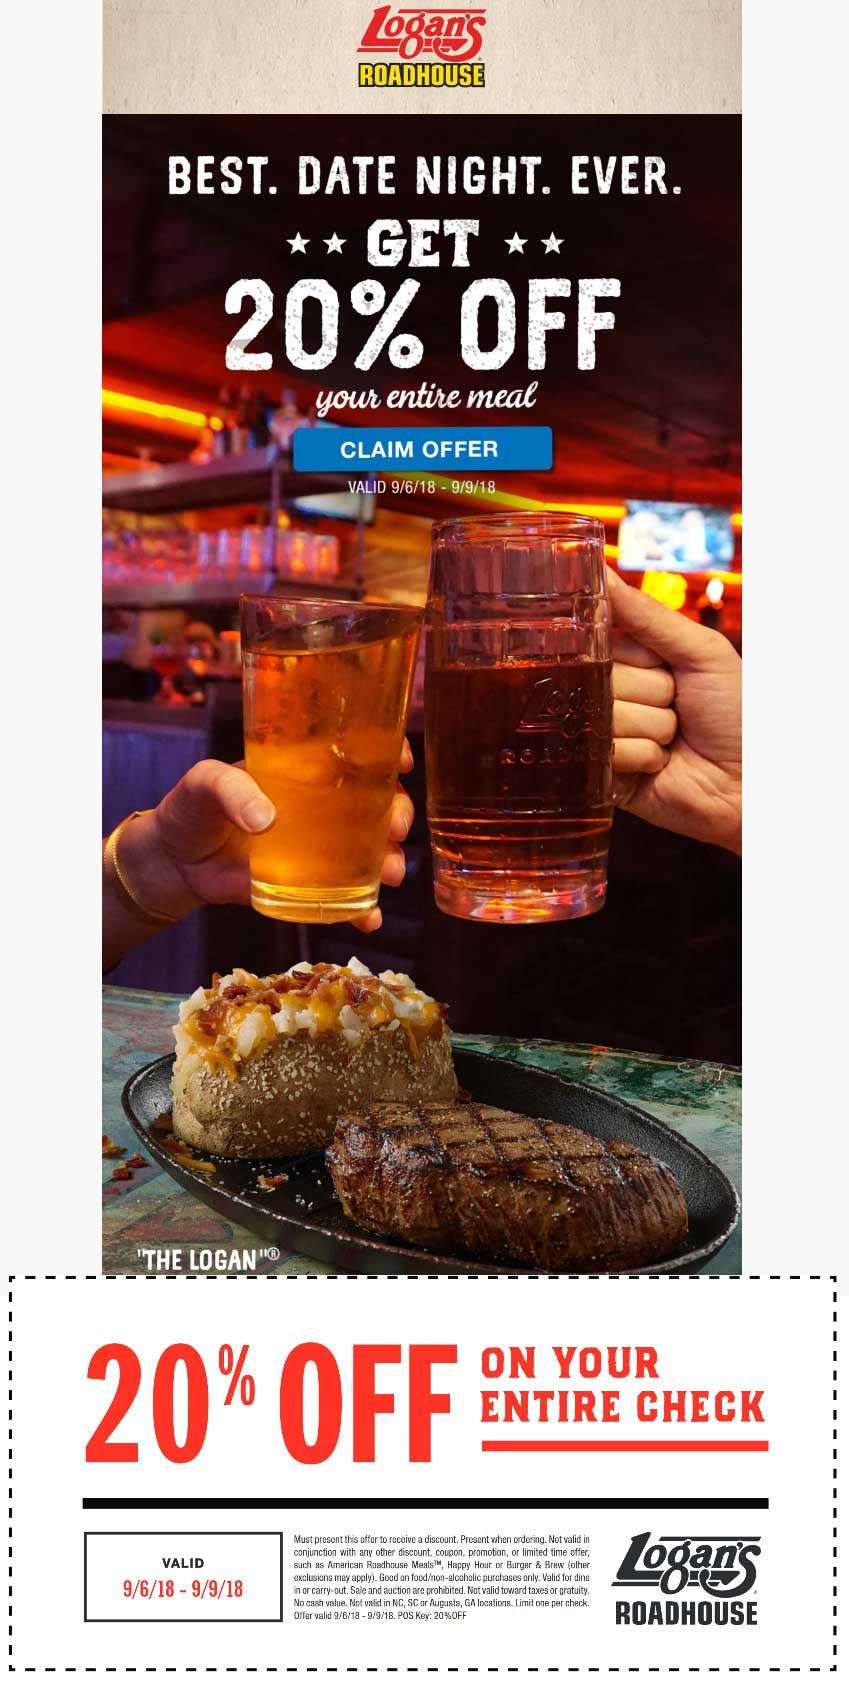 Logans Roadhouse Coupon June 2020 20% off at Logans Roadhouse restaurants